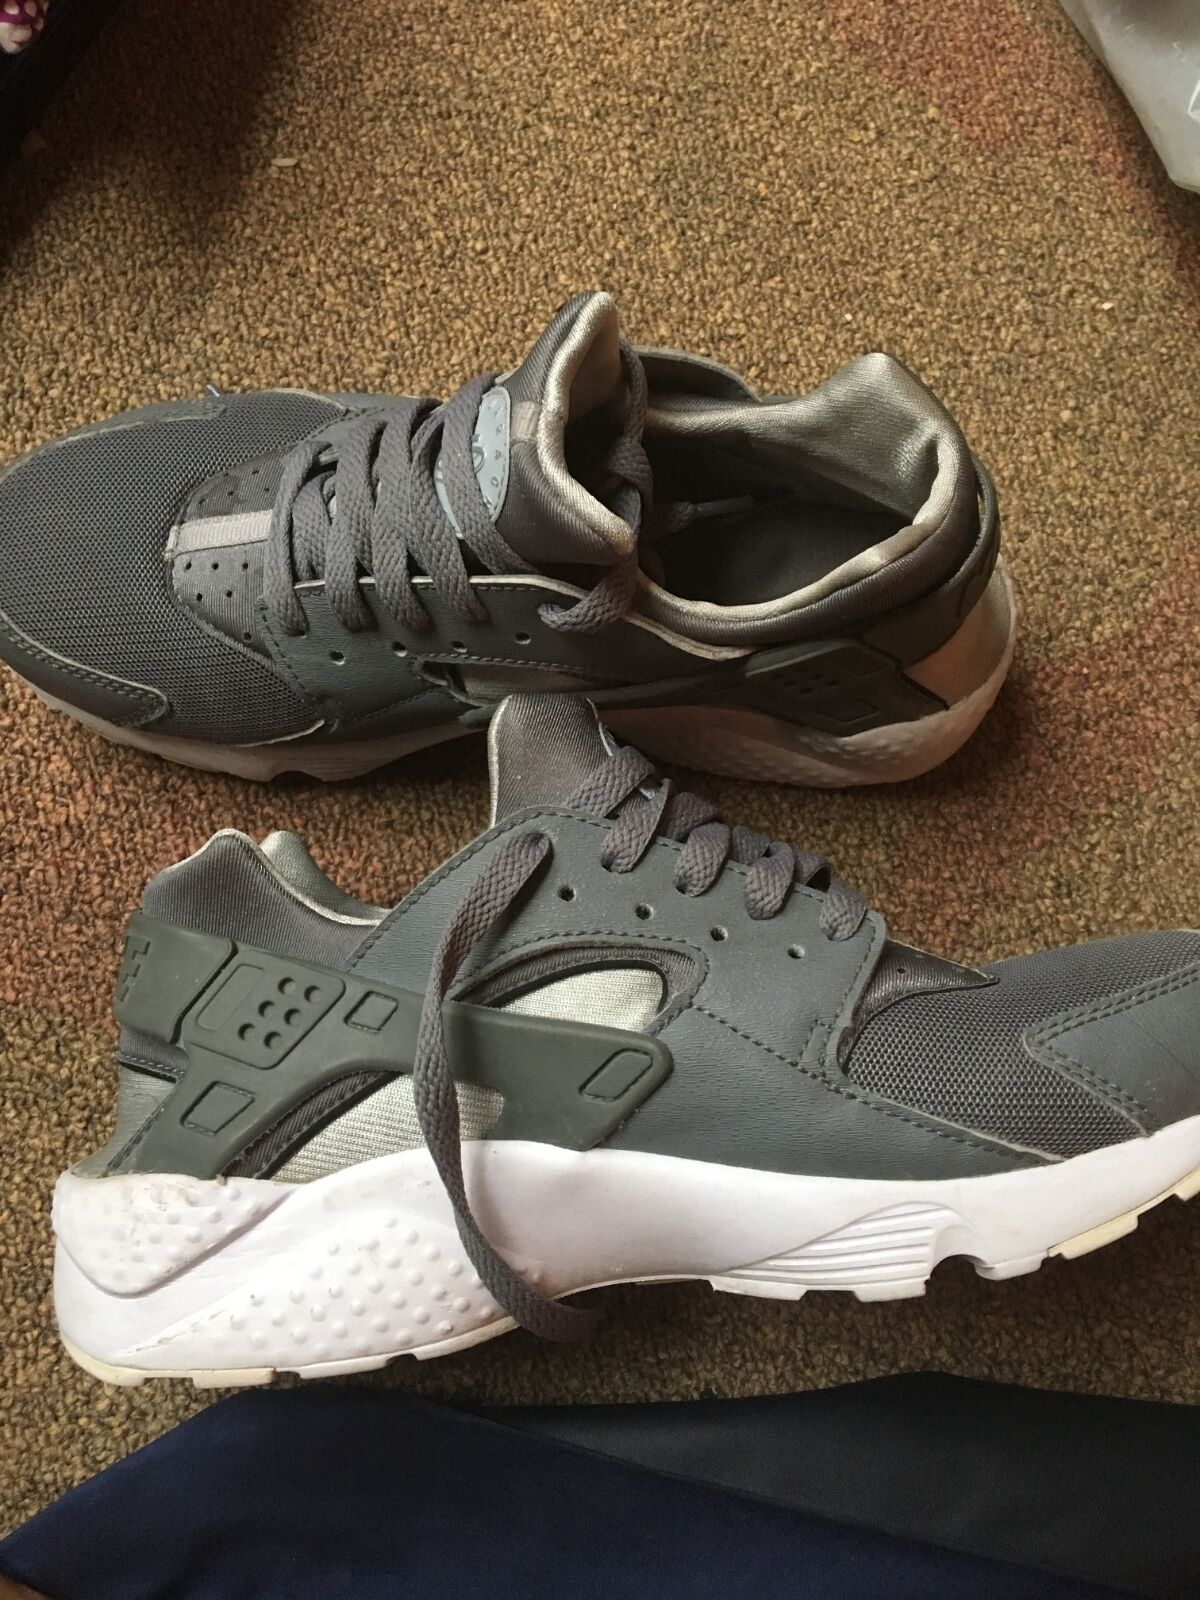 womens hurraches size 6  Cheap and fashionable